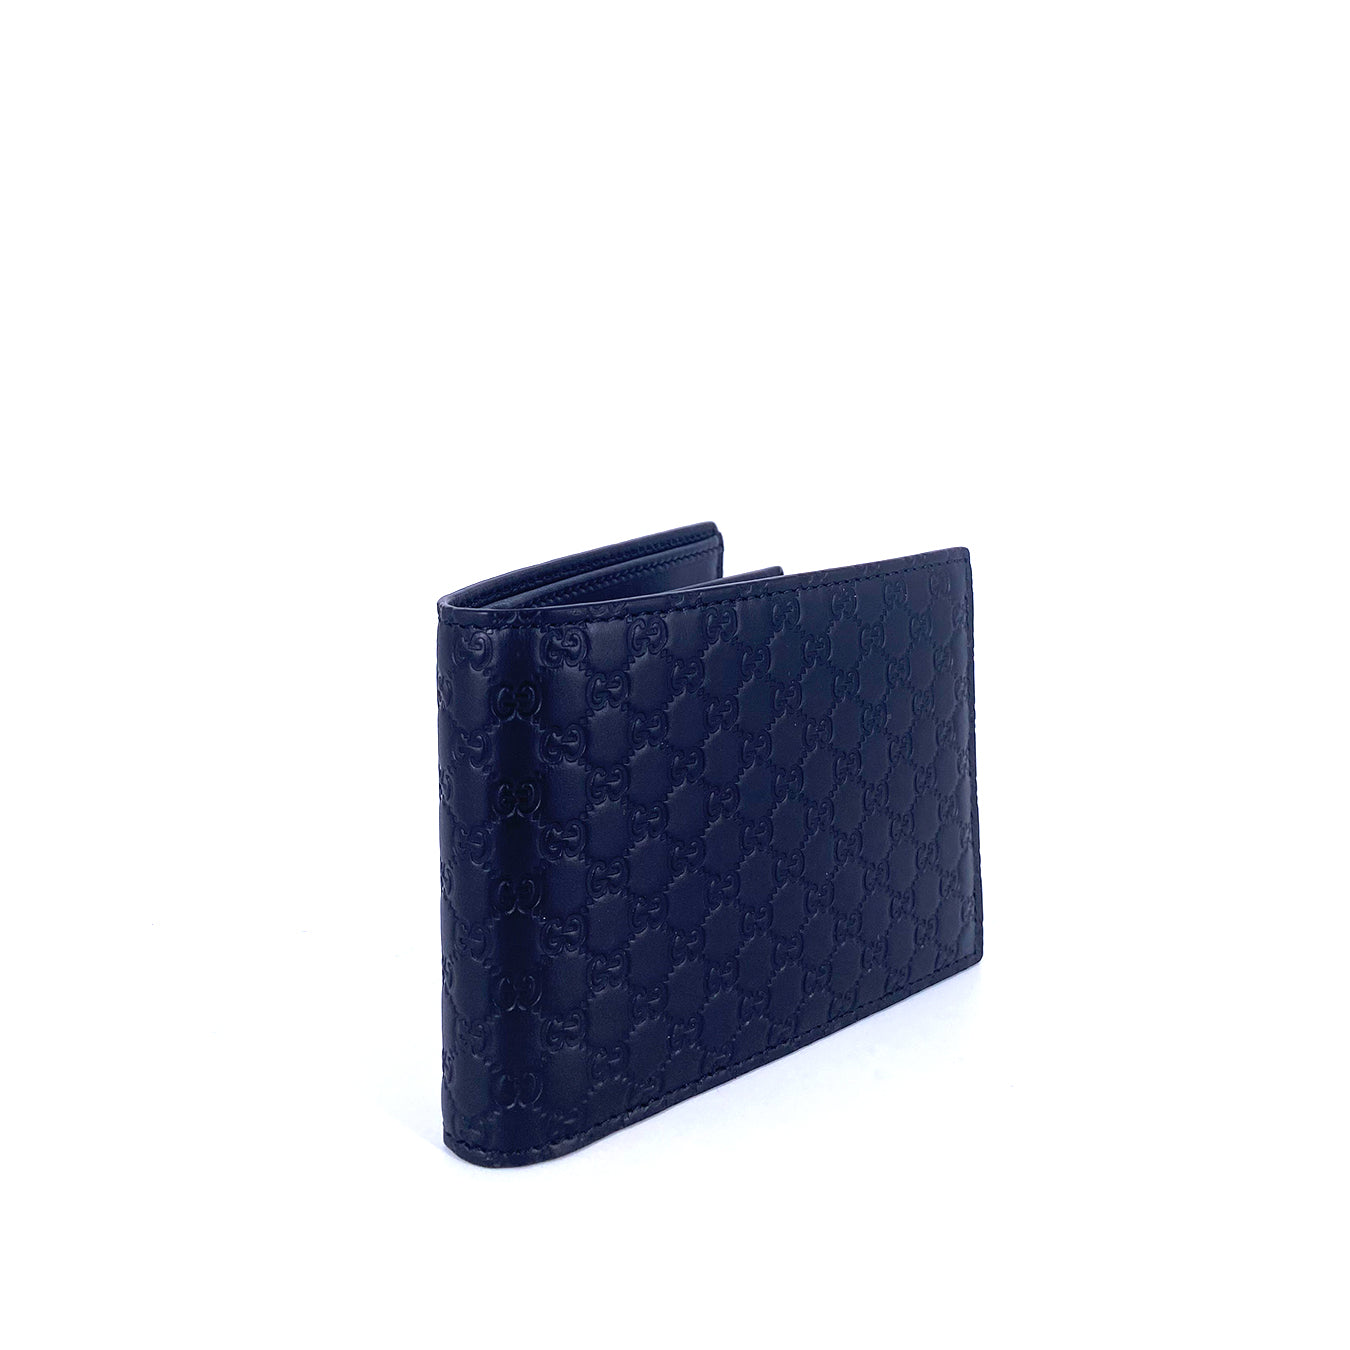 Gucci Microguccissima Men's Leather Trifold Wallet Black